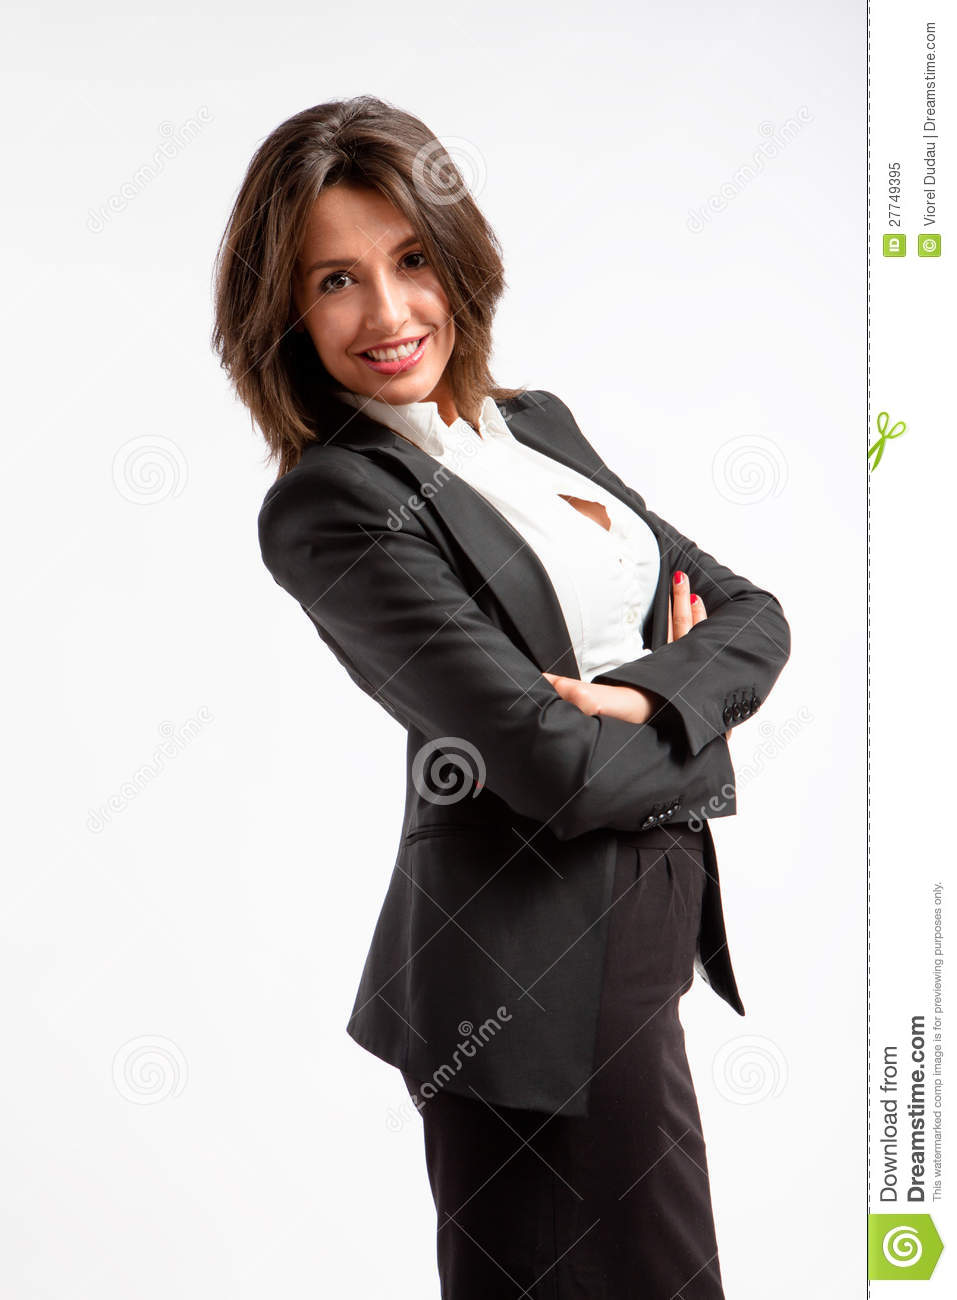 Smiling corporate woman